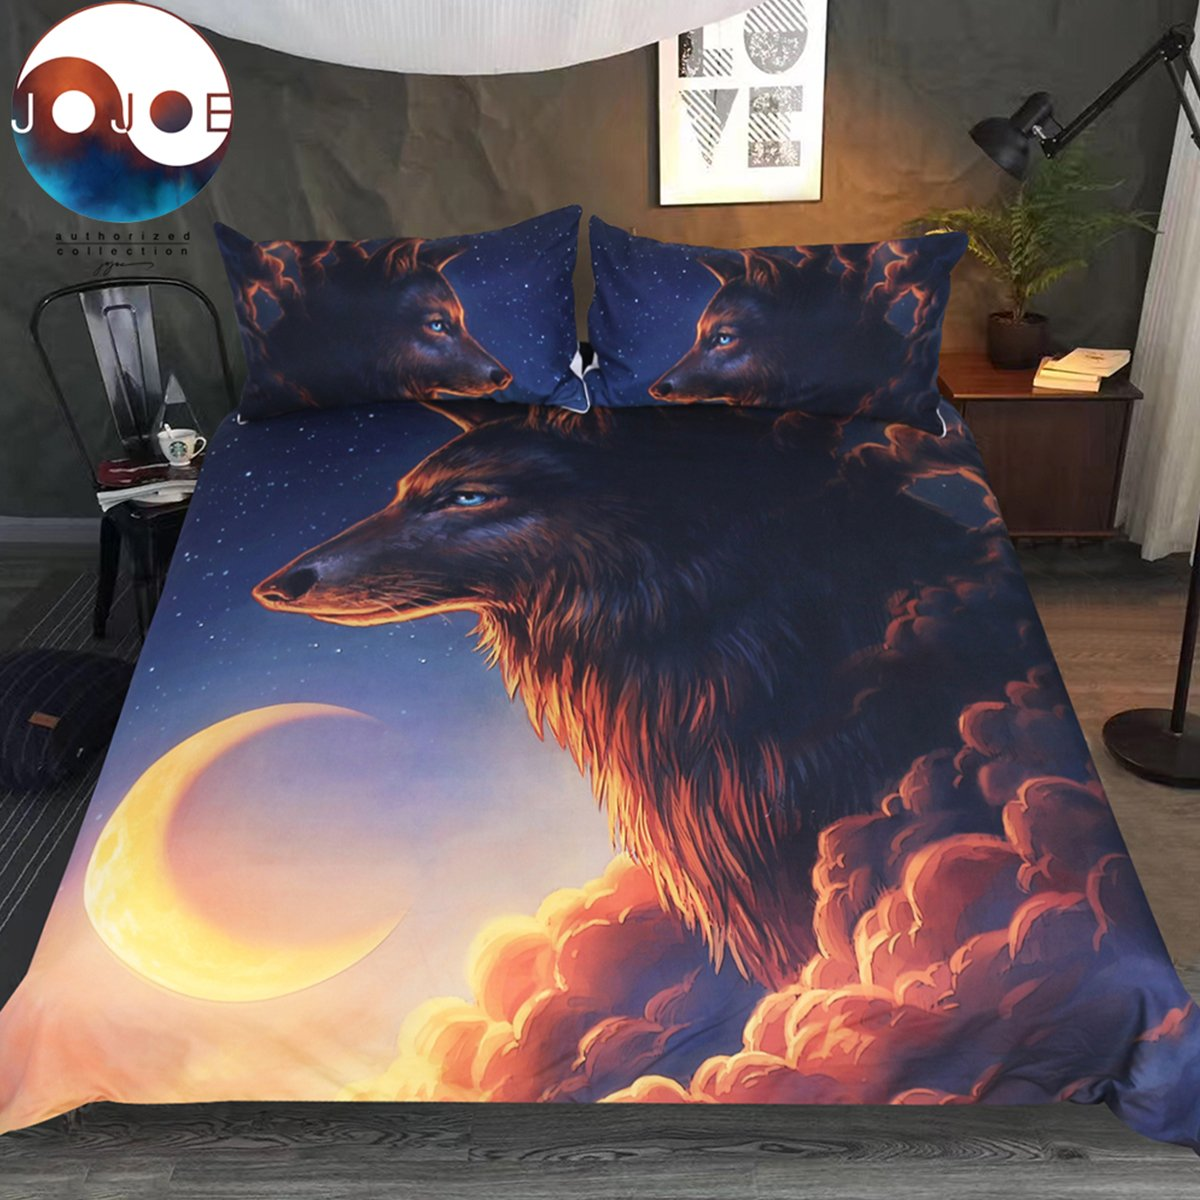 Sleepwish Night Guardian by Jojoesart Bedding Set 3 Piece Lunar Wolf Duvet Cover 3D Wolf Mountain Crescent Moon Fantasy Animal Bed Cover for Kids Adults (Twin) by Sleepwish